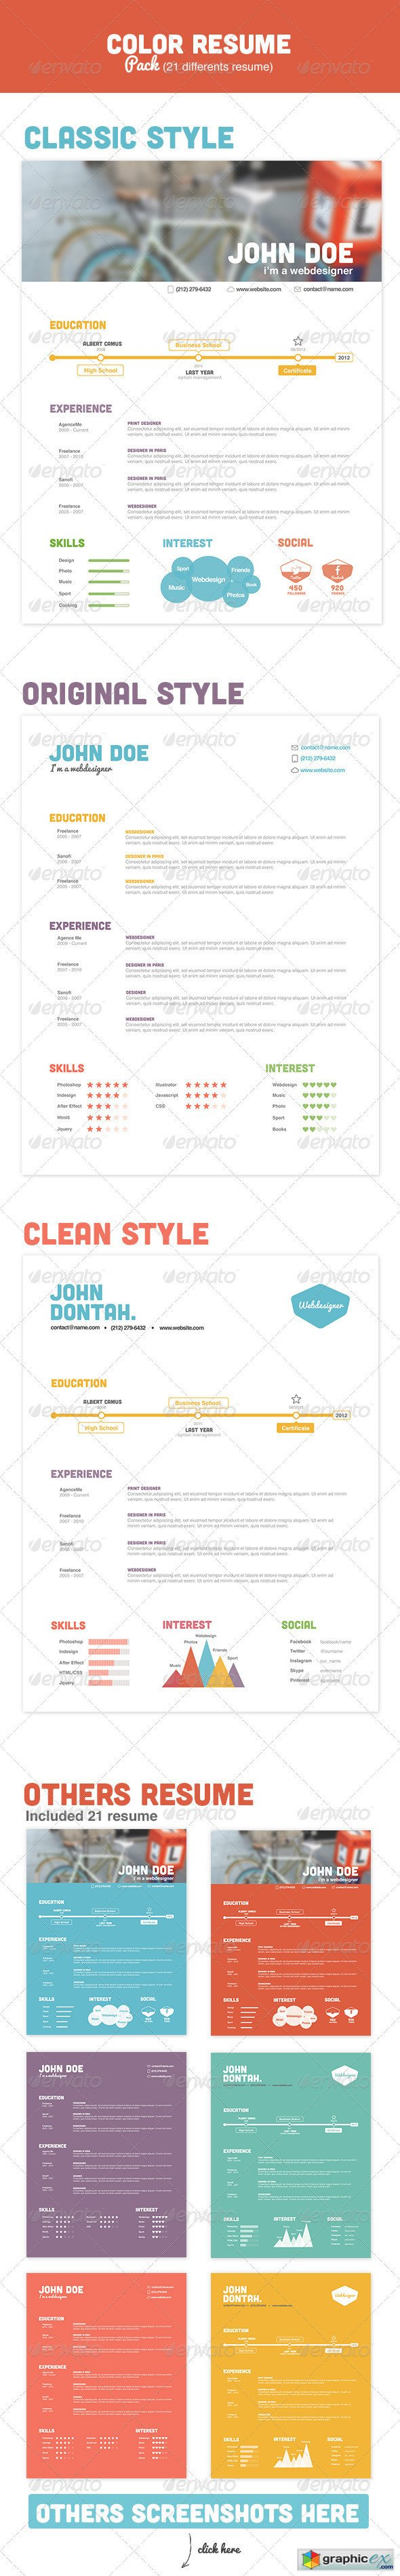 Color Resume Pack 2574197